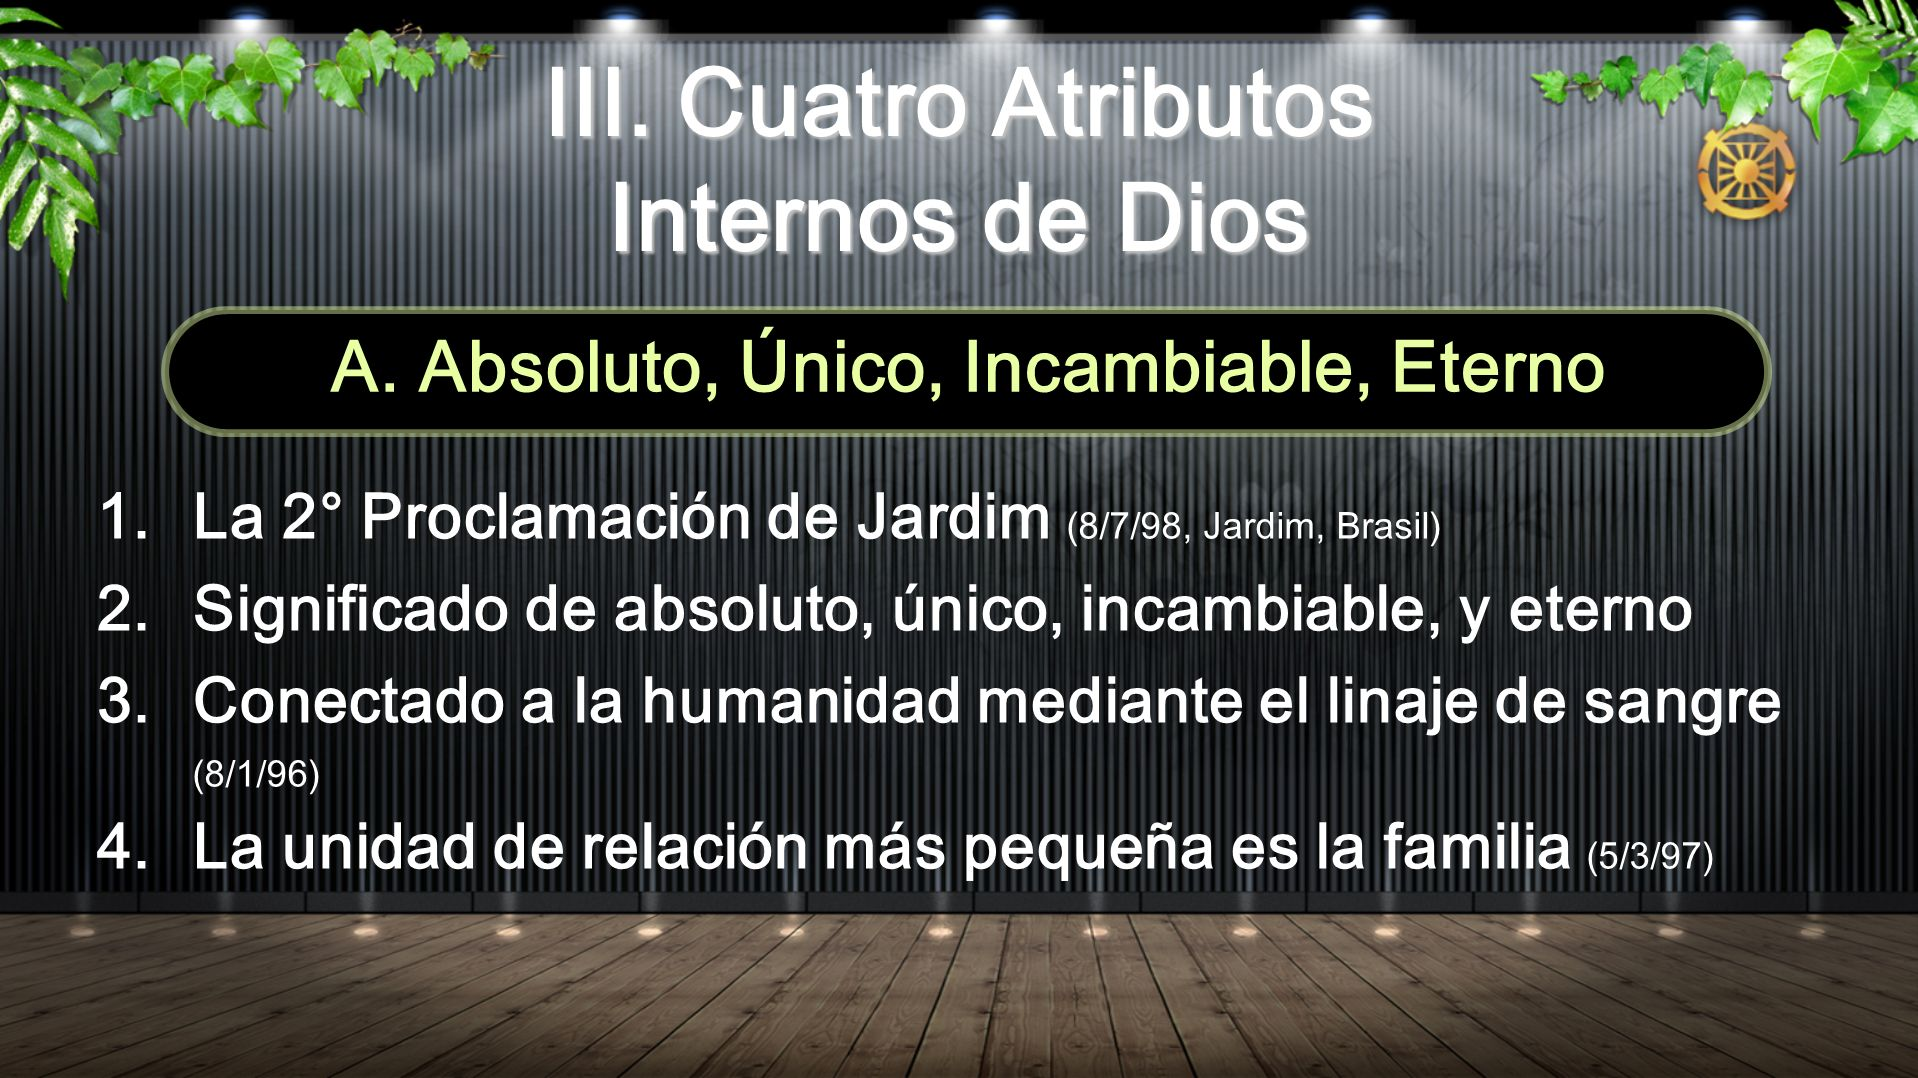 A. Absoluto, Único, Incambiable, Eterno